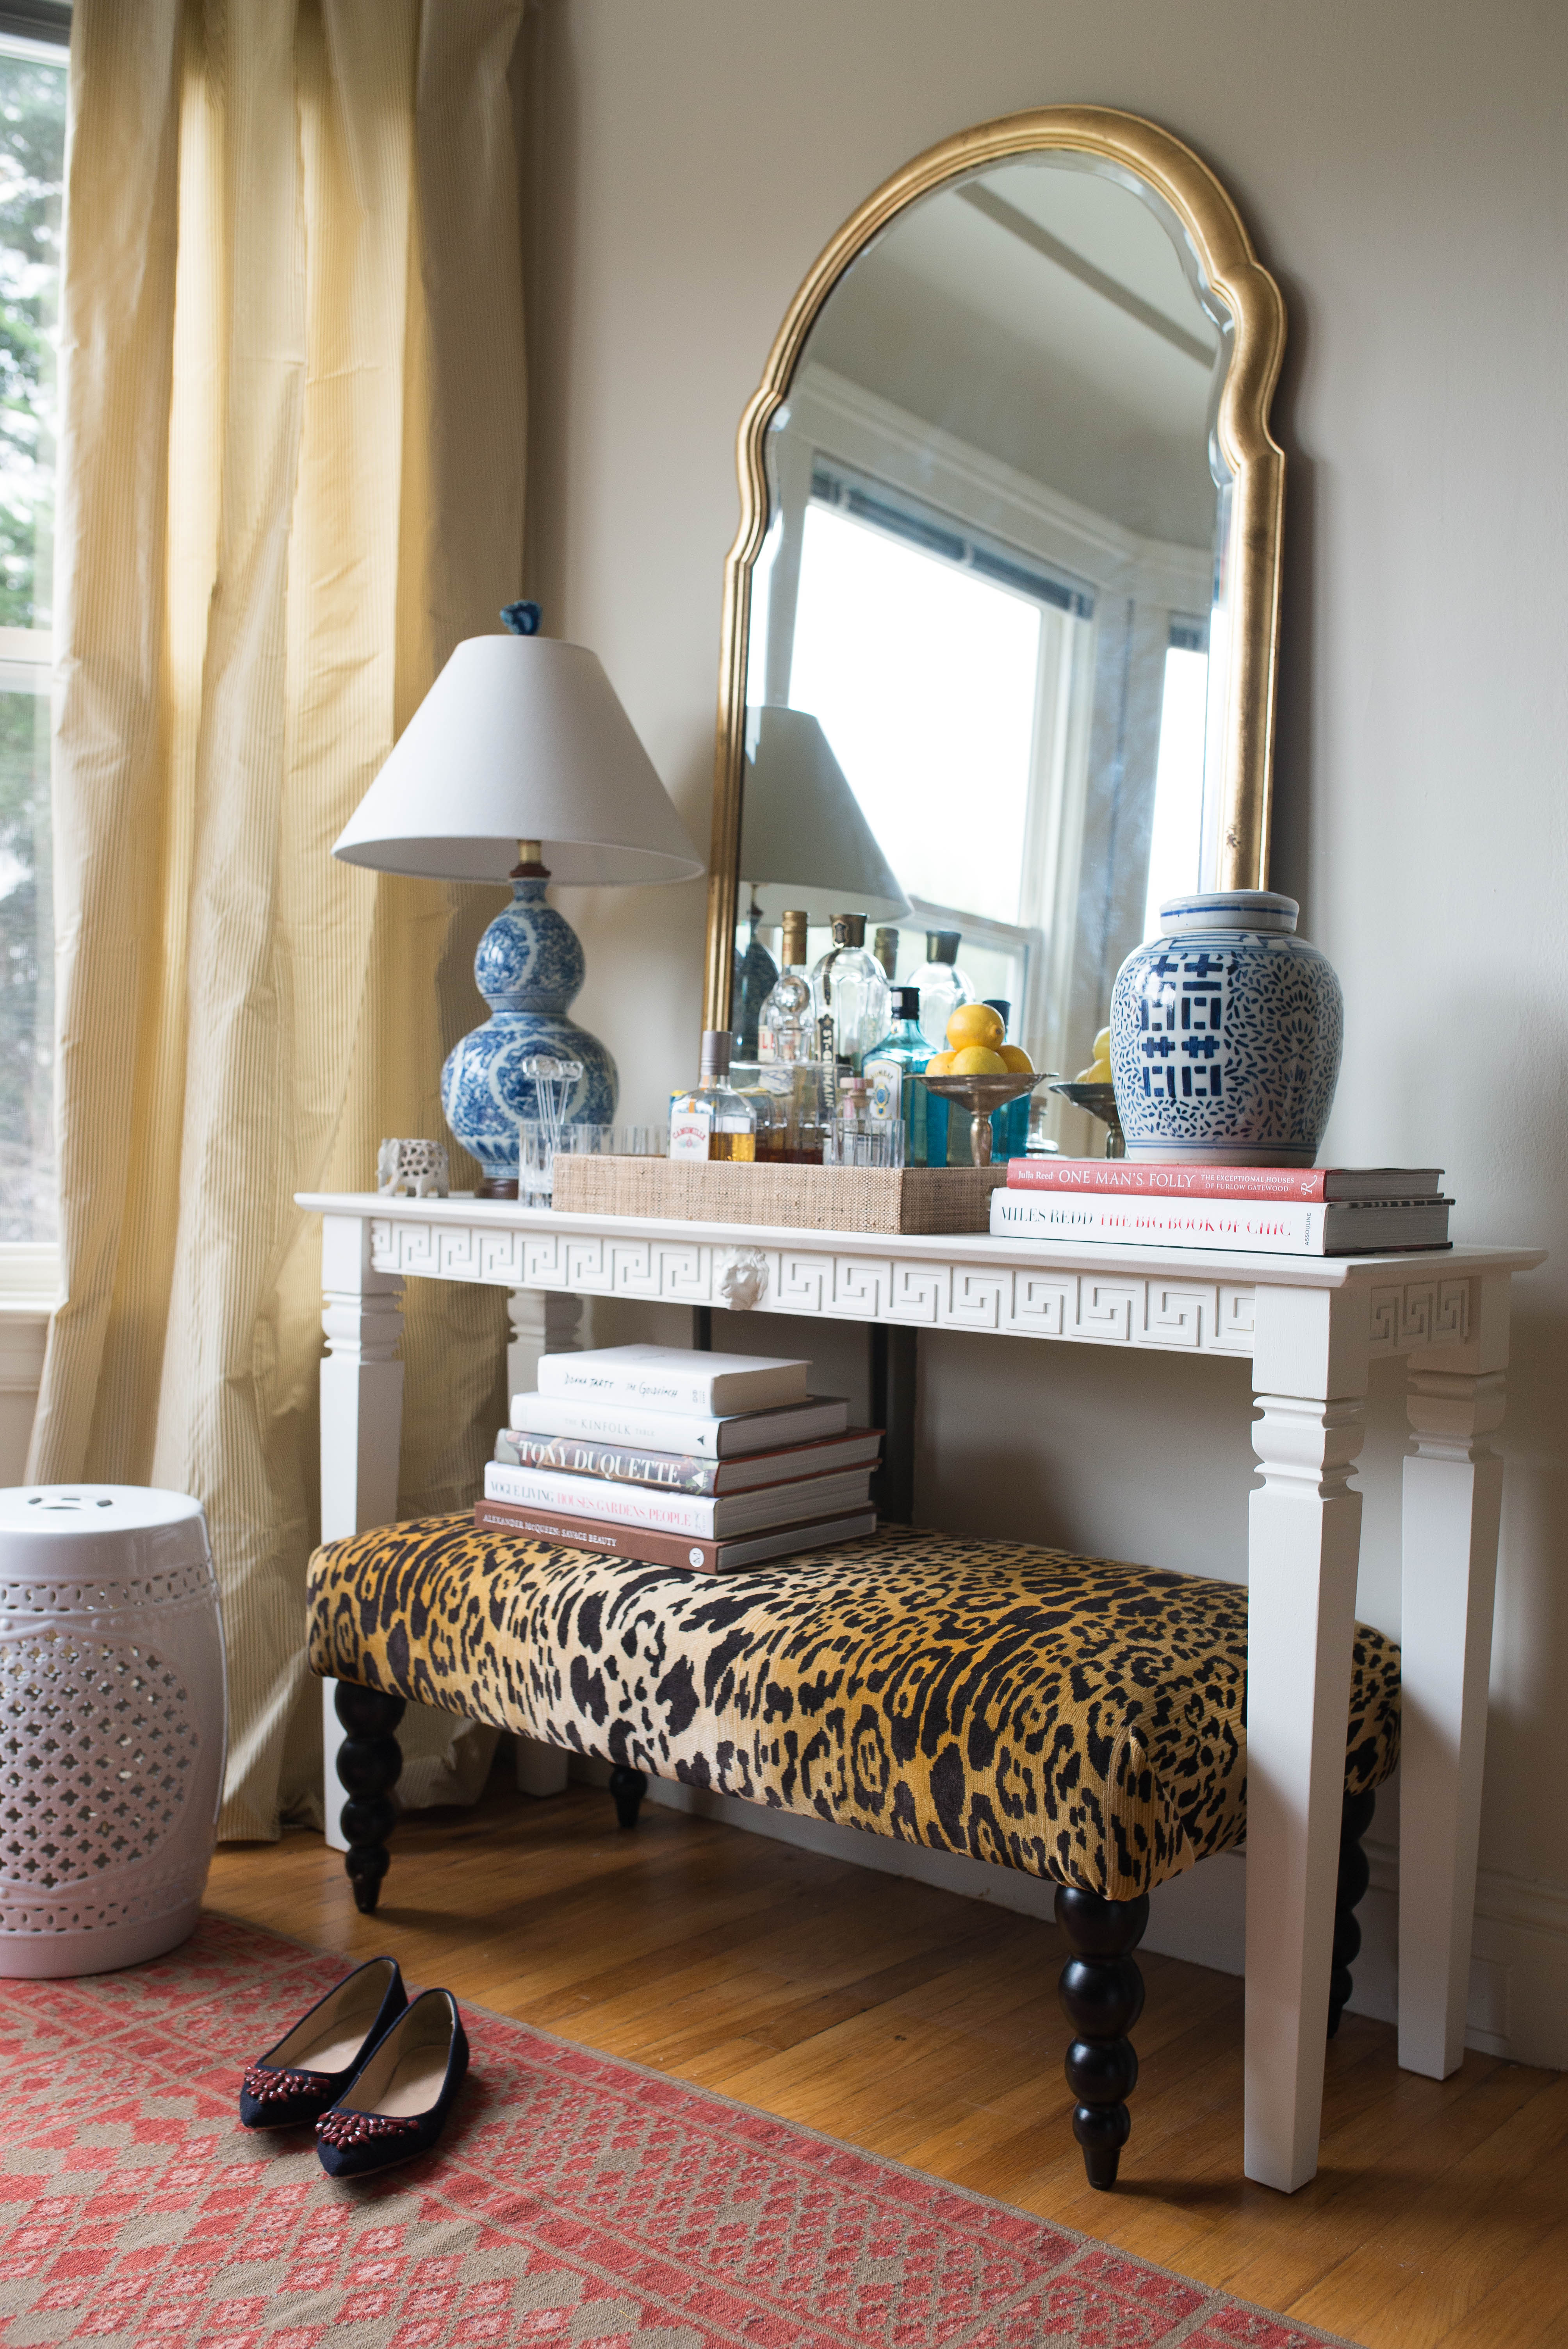 Ruthie Sommers diy greek key console table à la ruthie sommers - stacie flinner